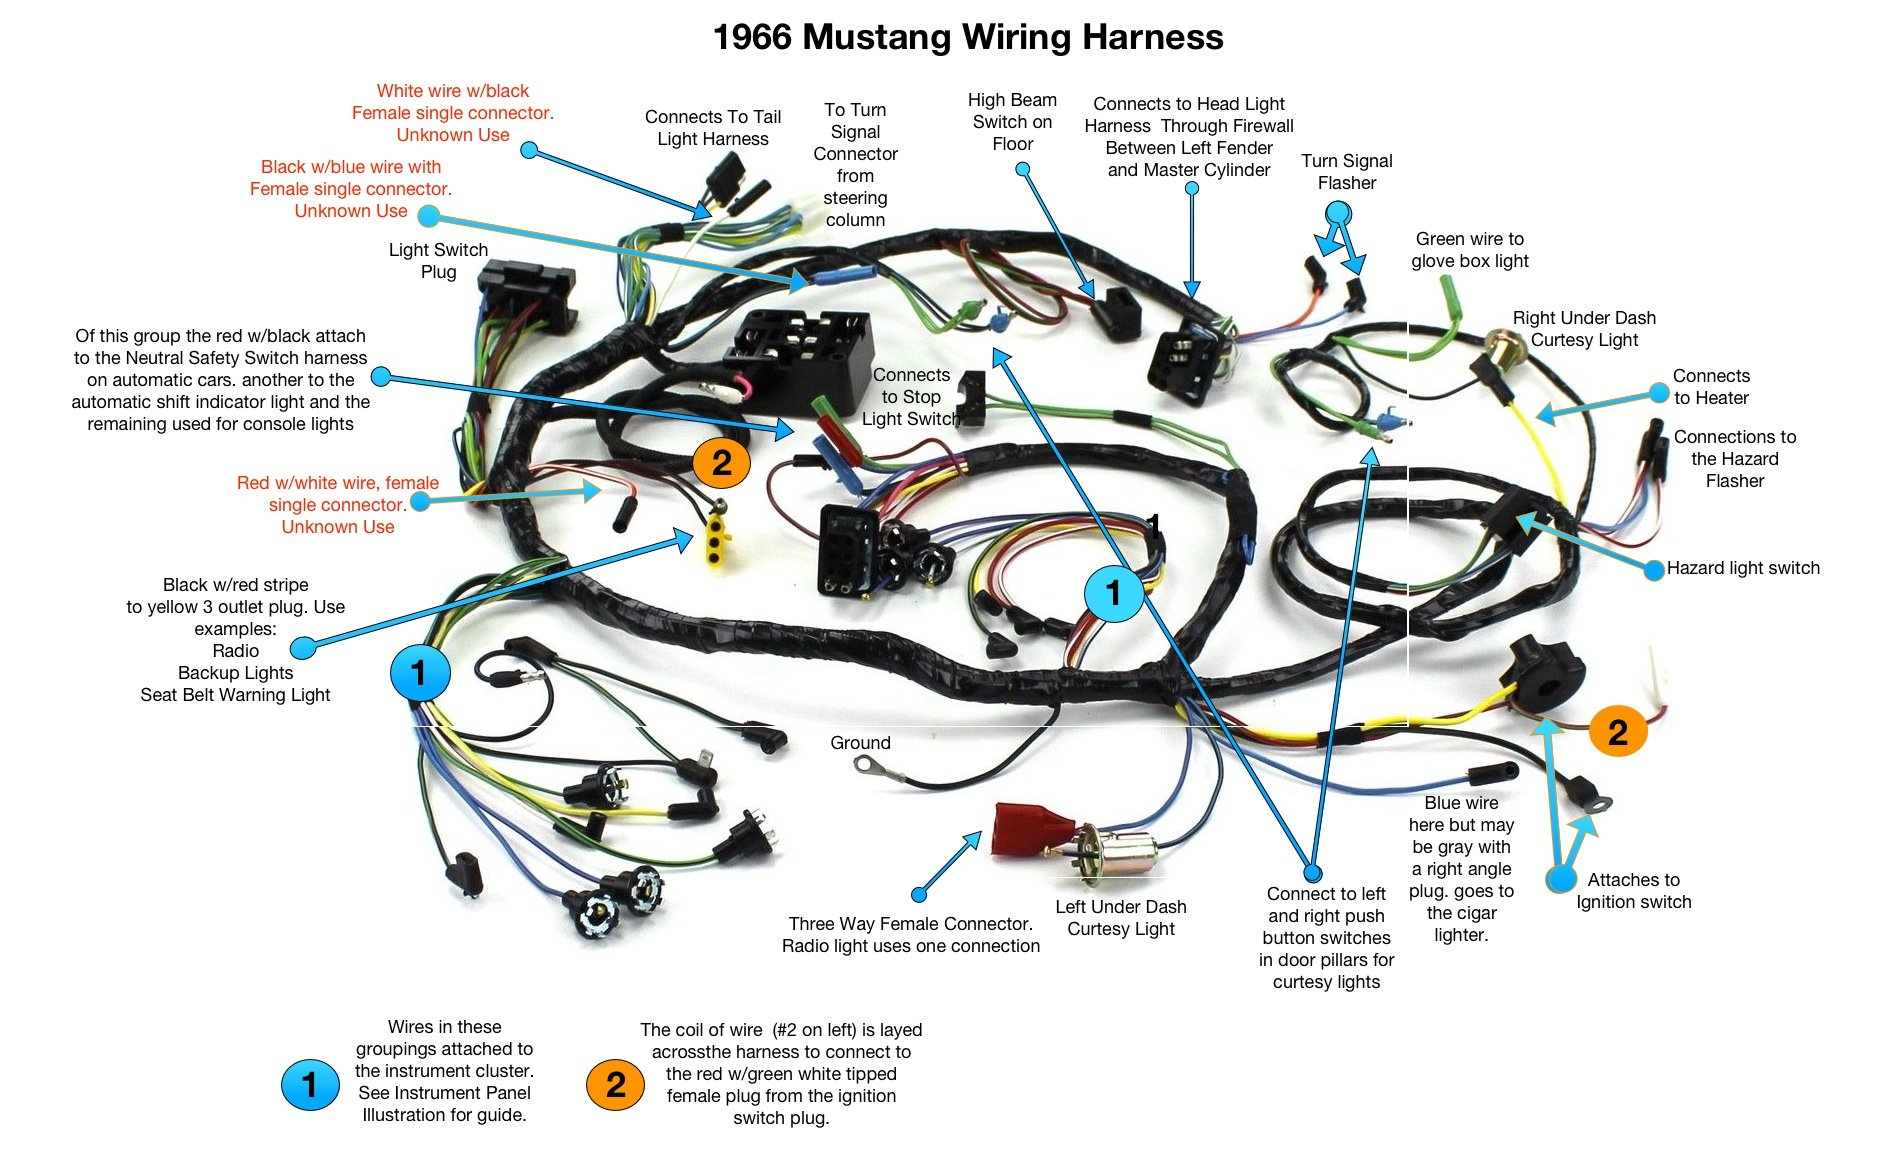 seat belt wiring diagrams automotive wiring plug diagram wiring image wiring diagram mustang wiring harness diagram mustang wiring diagrams on wiring